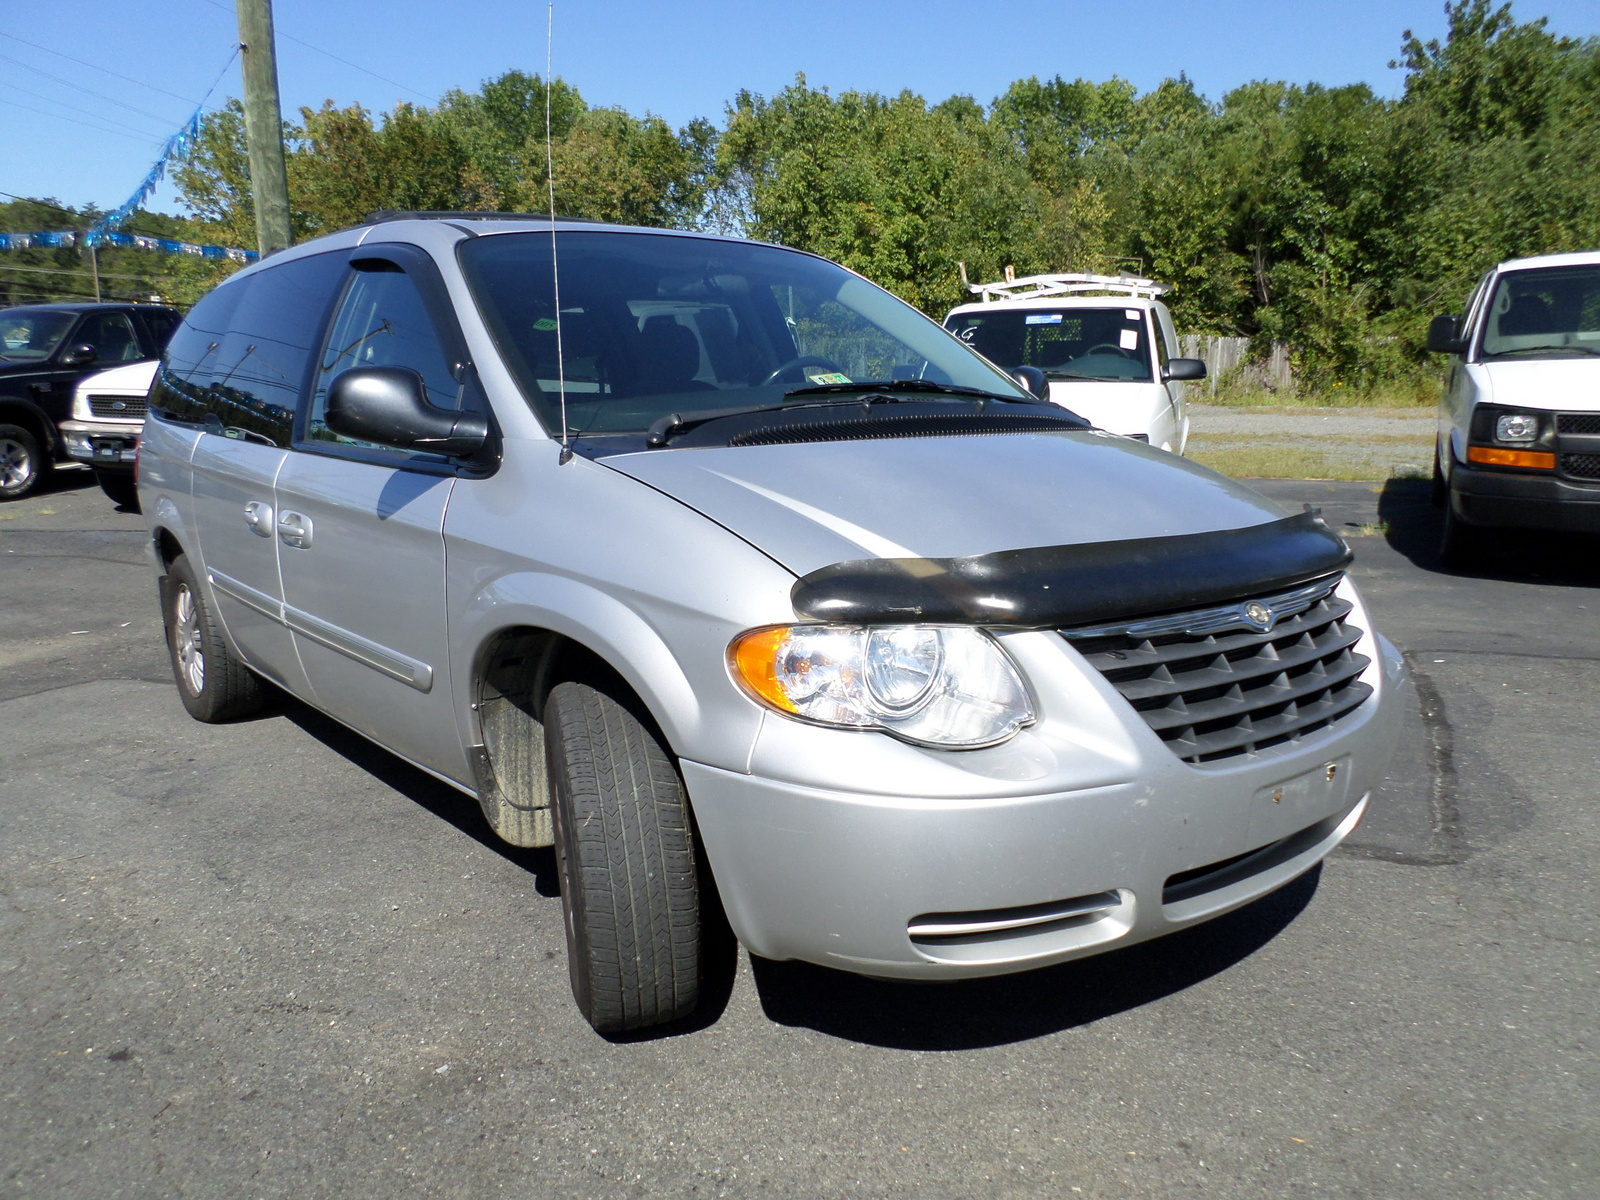 2006 chrysler town country exterior pictures cargurus. Black Bedroom Furniture Sets. Home Design Ideas